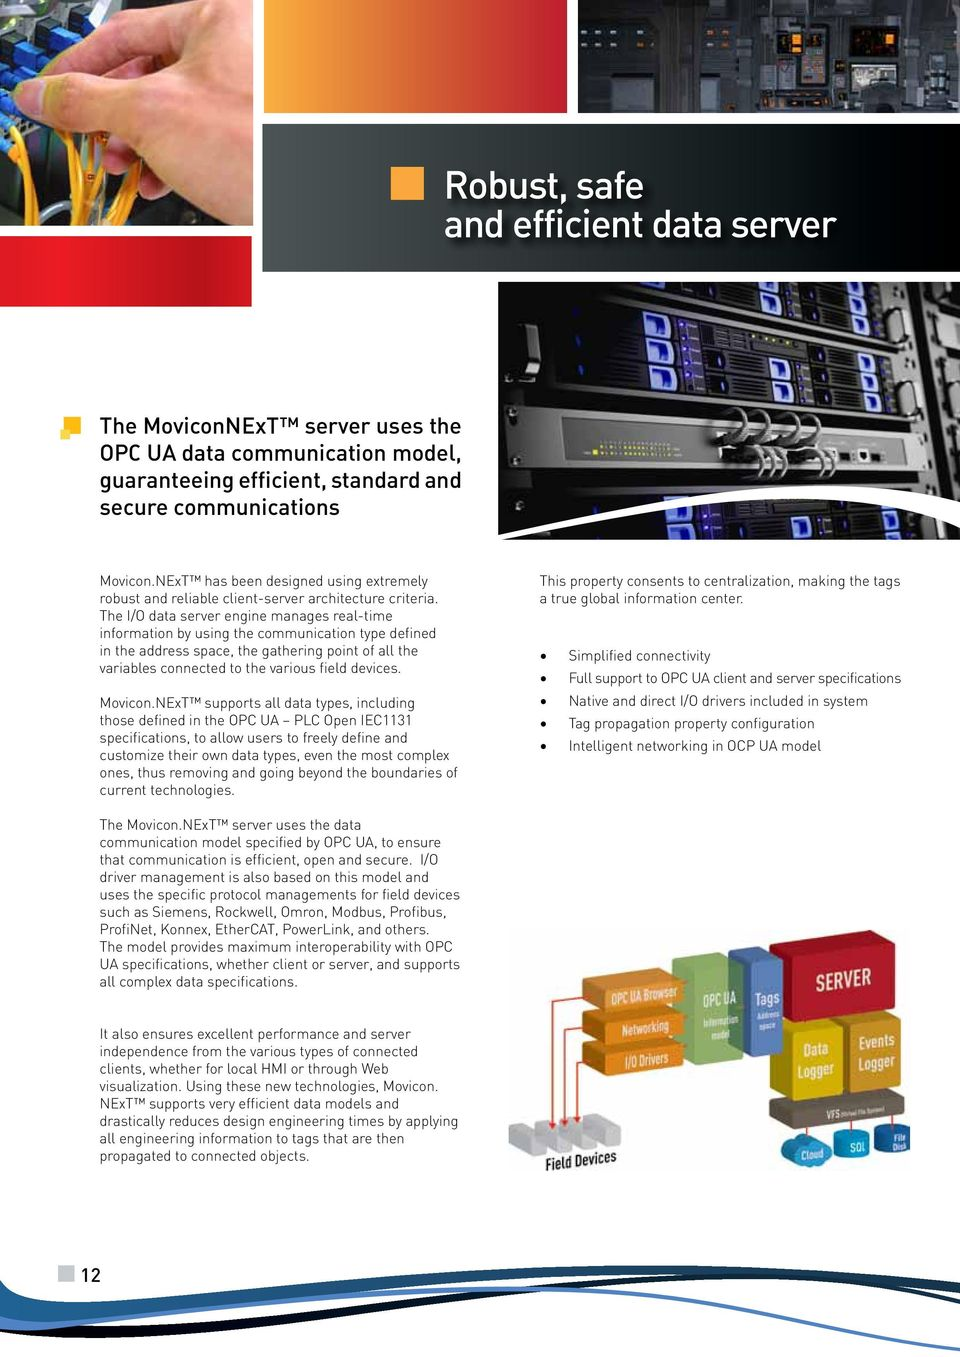 The I/O data server engine manages real-time information by using the communication type defined in the address space, the gathering point of all the variables connected to the various field devices.